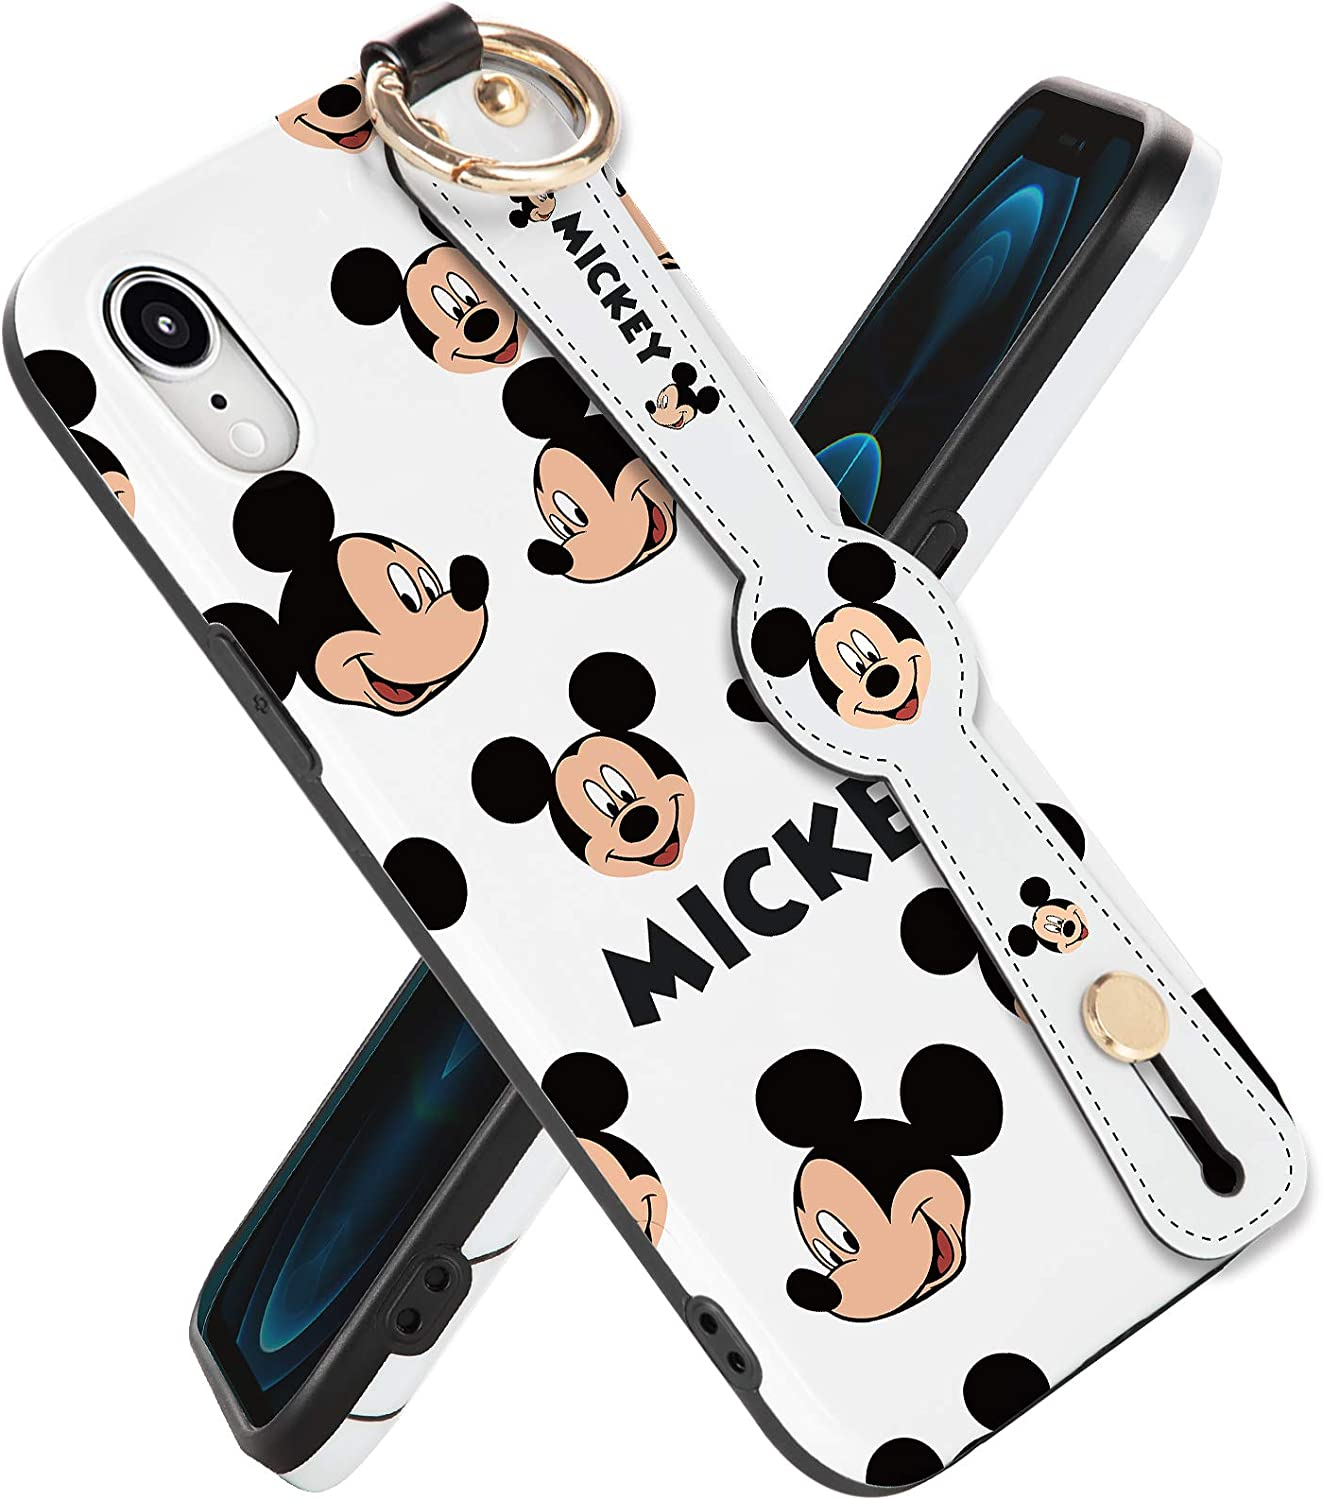 Disney Phone Case for iPhone XR 6.1